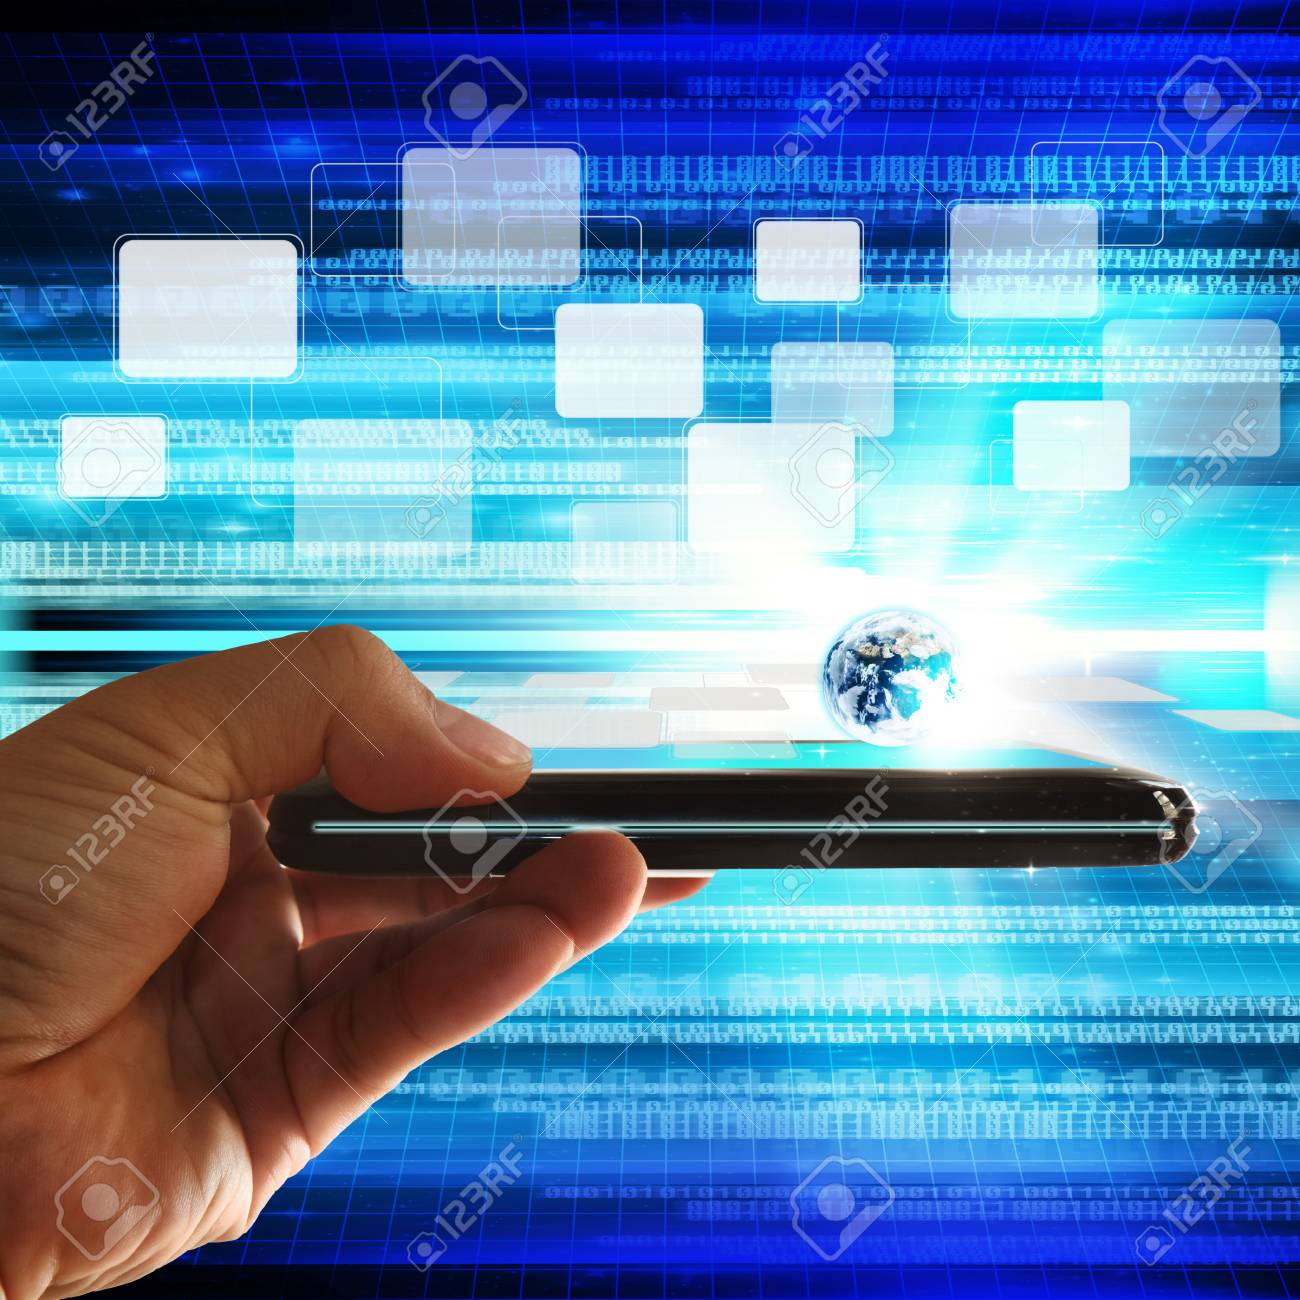 Touch screen mobile phone Stock Photo - 12602108